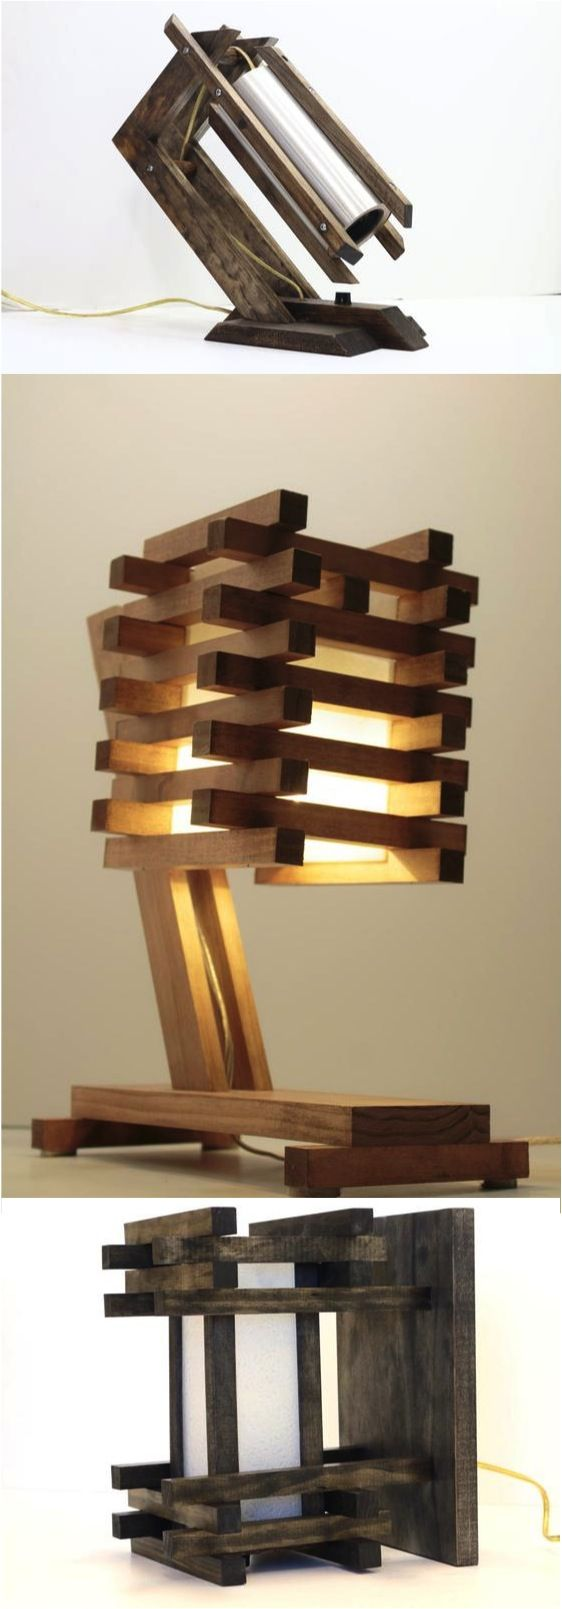 These beautiful lamps are so modern and unique. Your guests won't be able to talk about anything else! | Made on Hatch.co